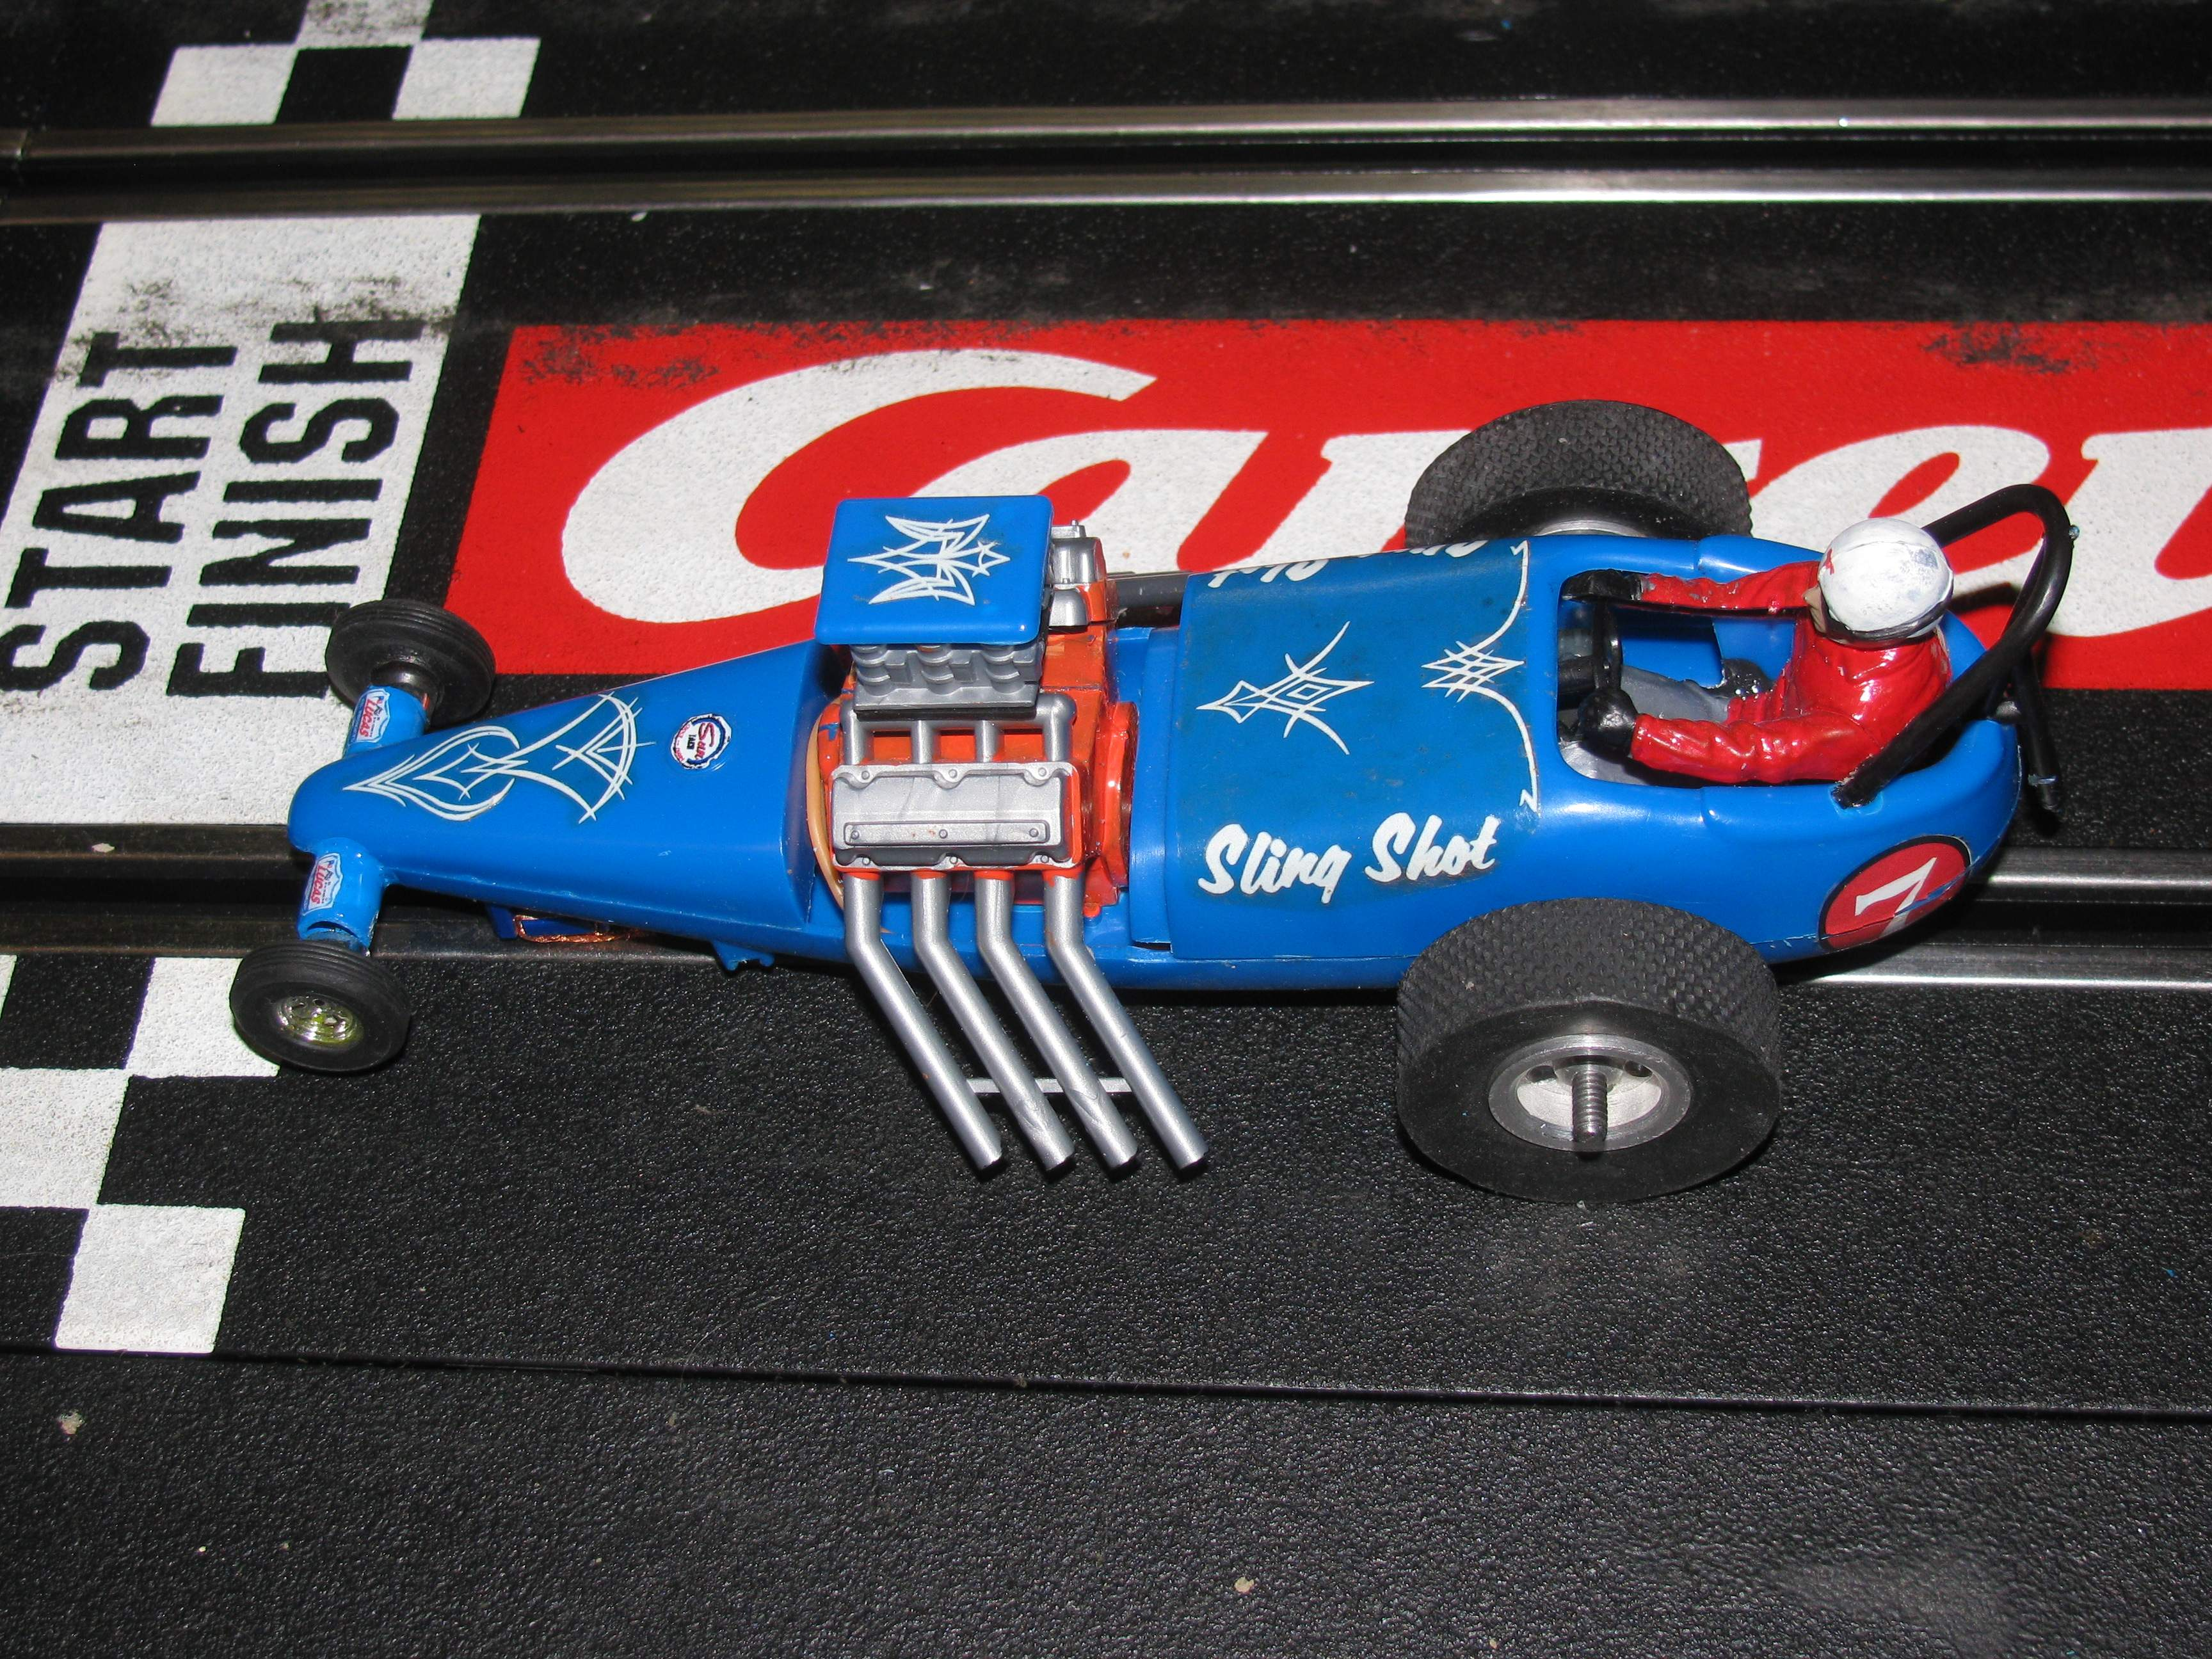 * SOLD * - Vintage Revell Monogram Sling Shot Dragster Slot Car 1/32 – 1/24 Scale - Car #7